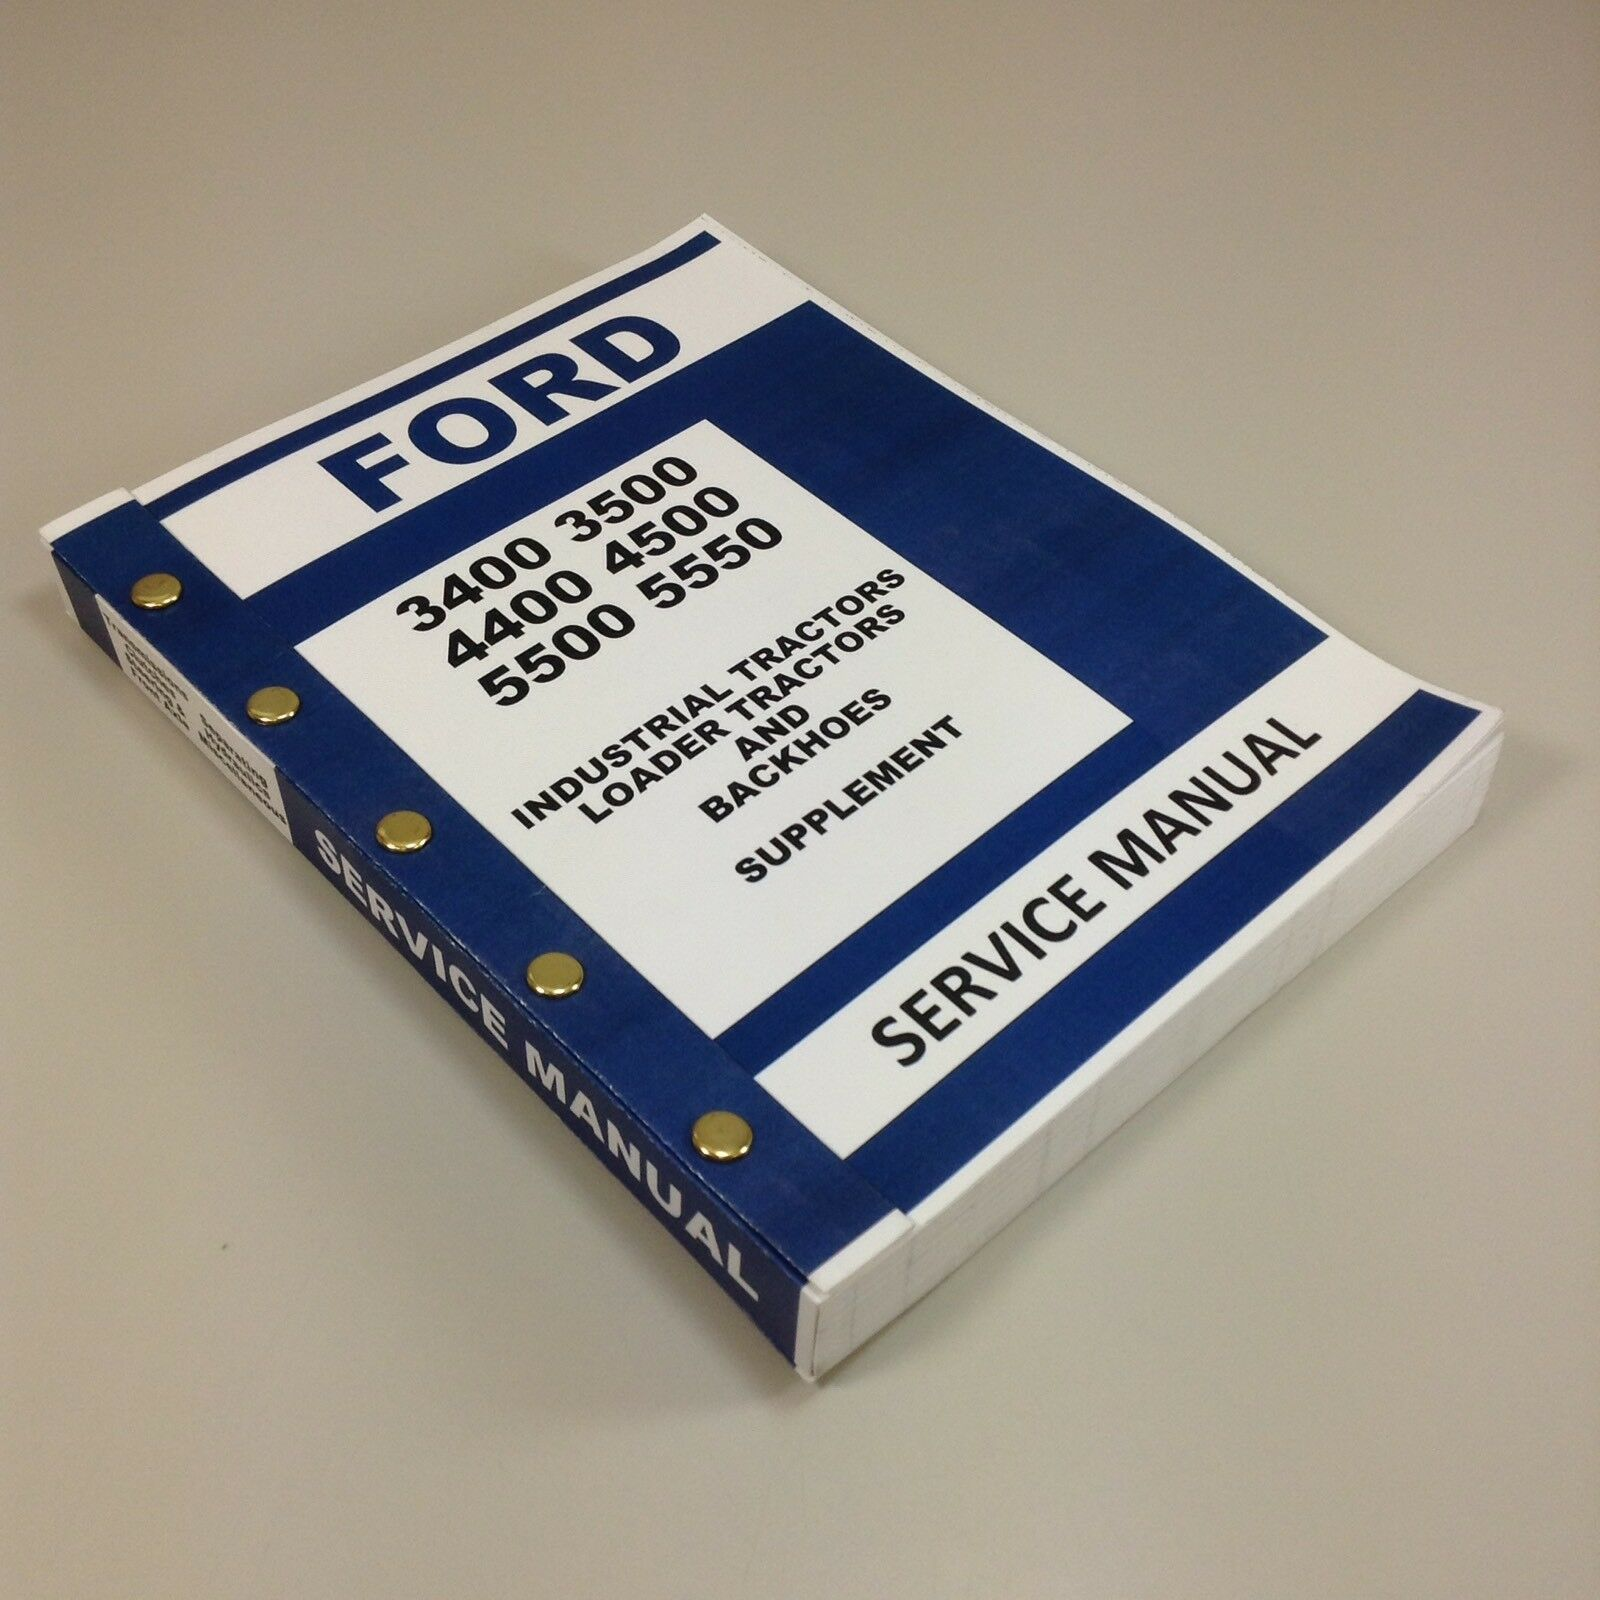 Ford 3400 3500 4400 4500 5500 5550 Backhoe Service Supplement Repair Manual  1 of 6FREE Shipping ...